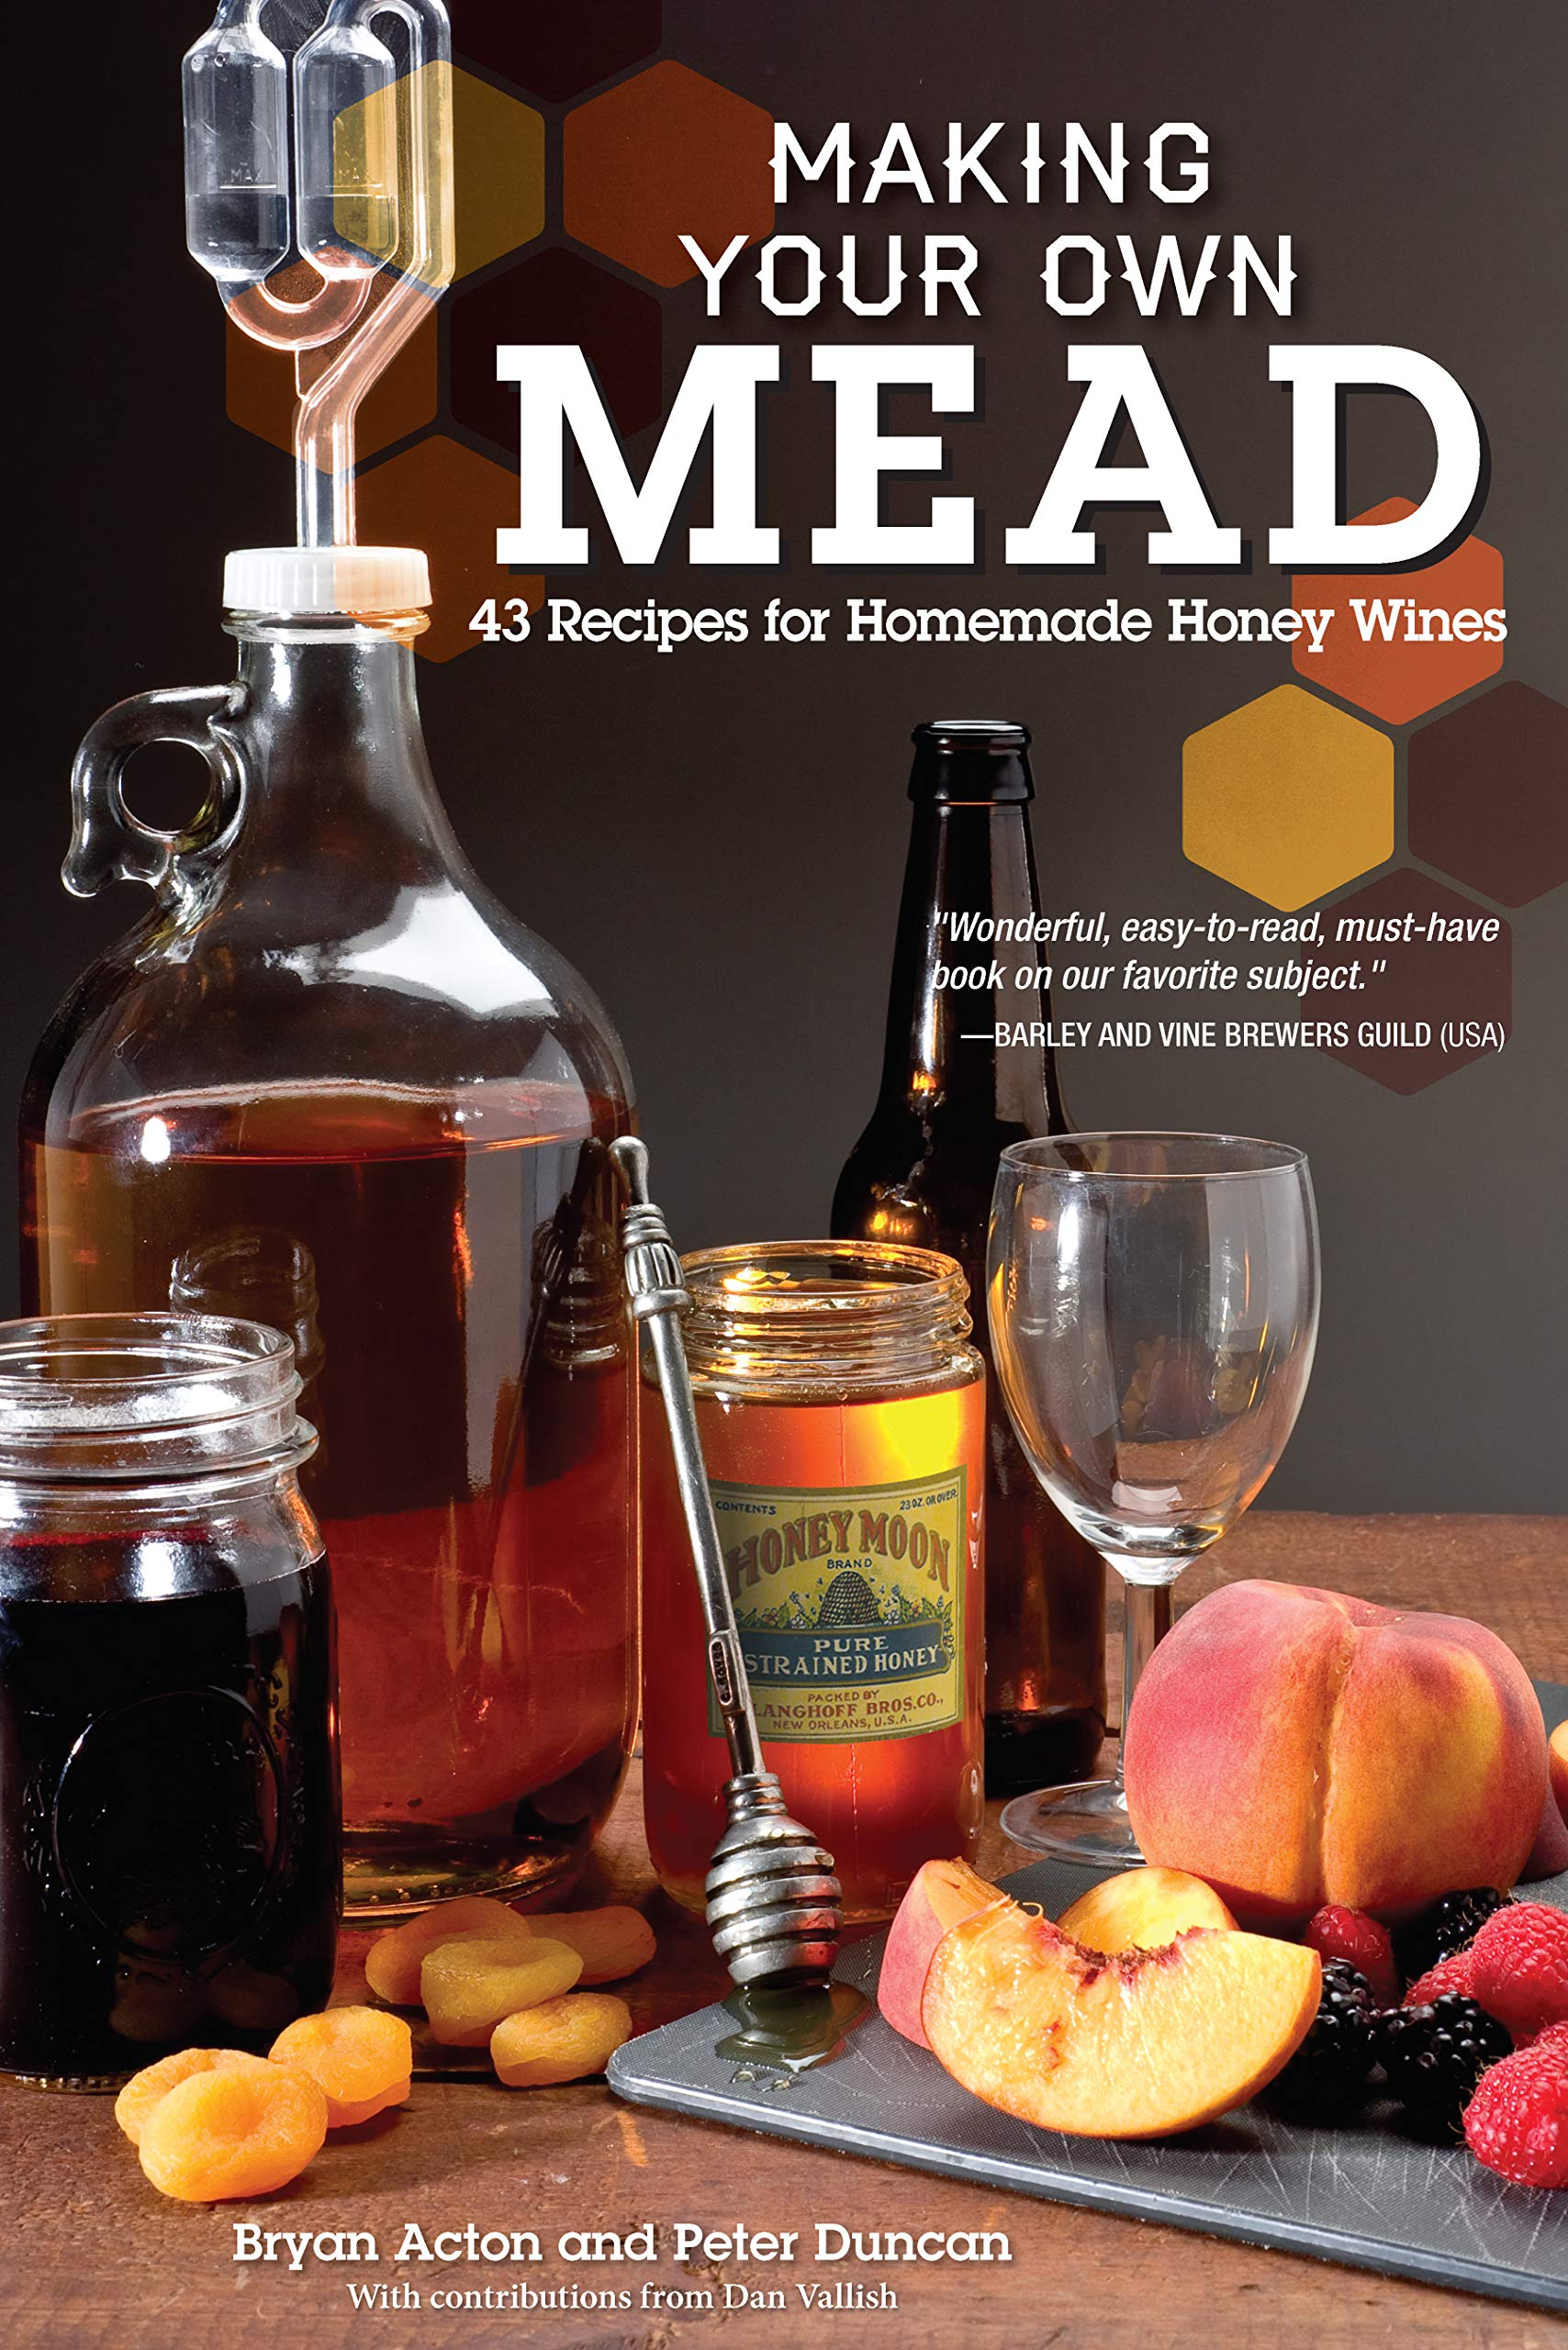 Making Your Own Mead: 43 Recipes for Homemade Honey Wines (Fox Chapel  Publishing) Basic Guide to Techniques, plus Recipes for Mead, Fruit  Melomels, Grape Pyments, Spiced Metheglins, & Apple Cysers: Duncan, Peter,